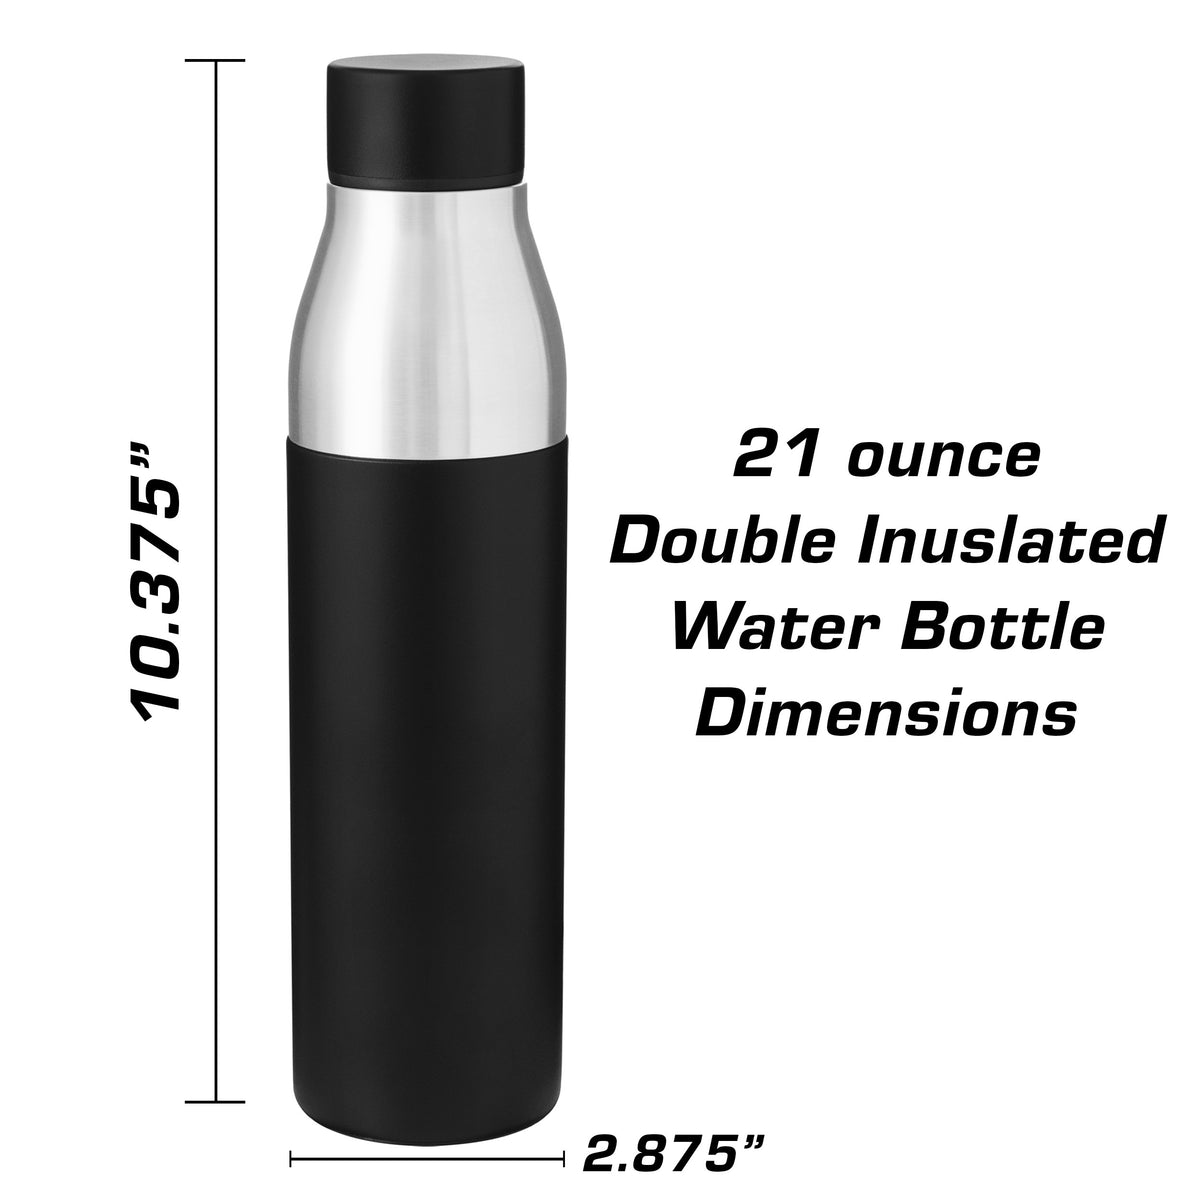 Toyota Tacoma TRD Insulated Stainless Steel Water Bottle - 21 oz